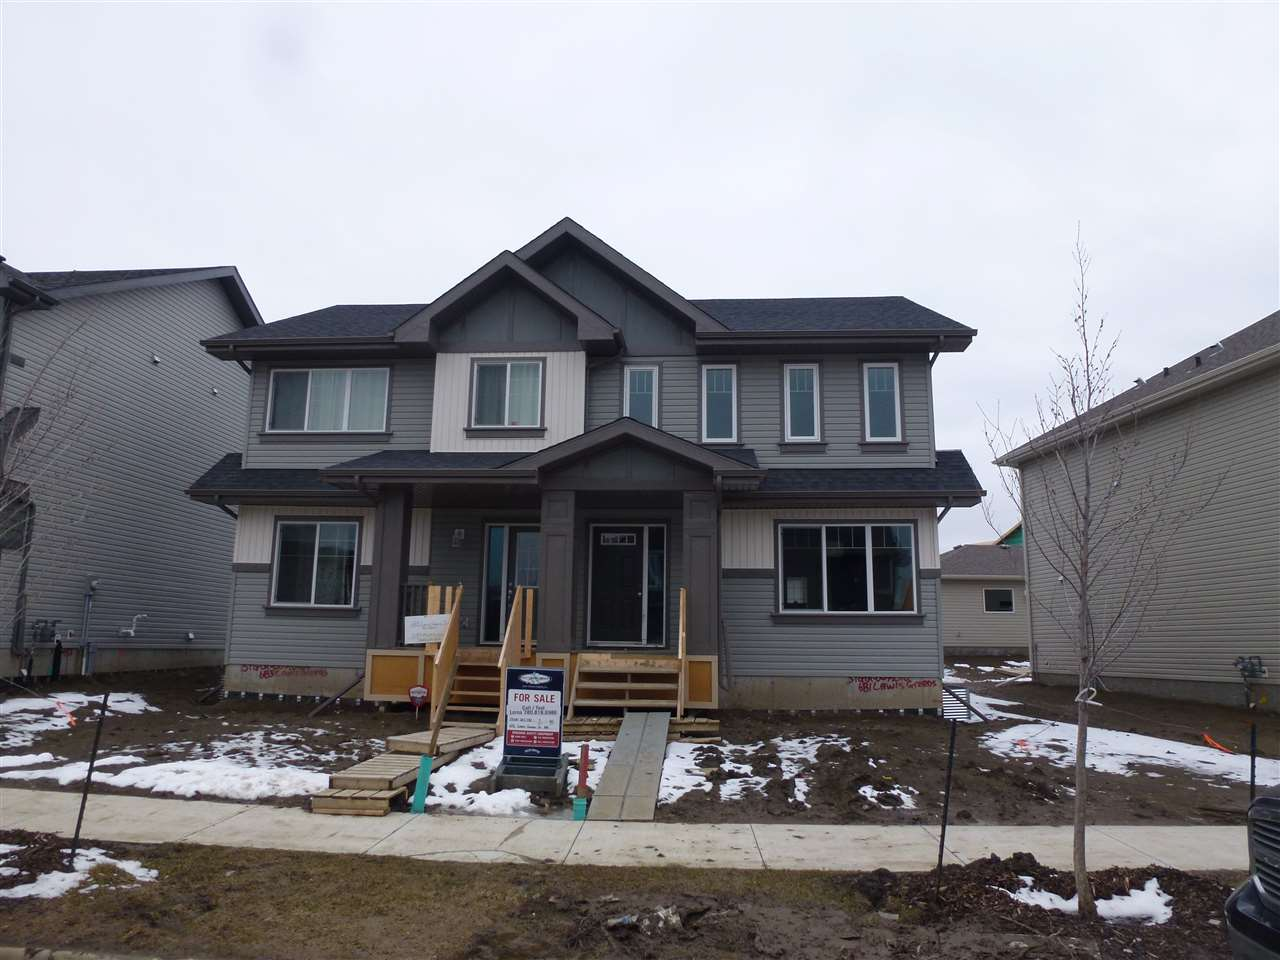 Main Photo: 681 LEWIS GREENS Drive in Edmonton: Zone 58 House Half Duplex for sale : MLS(r) # E4061059